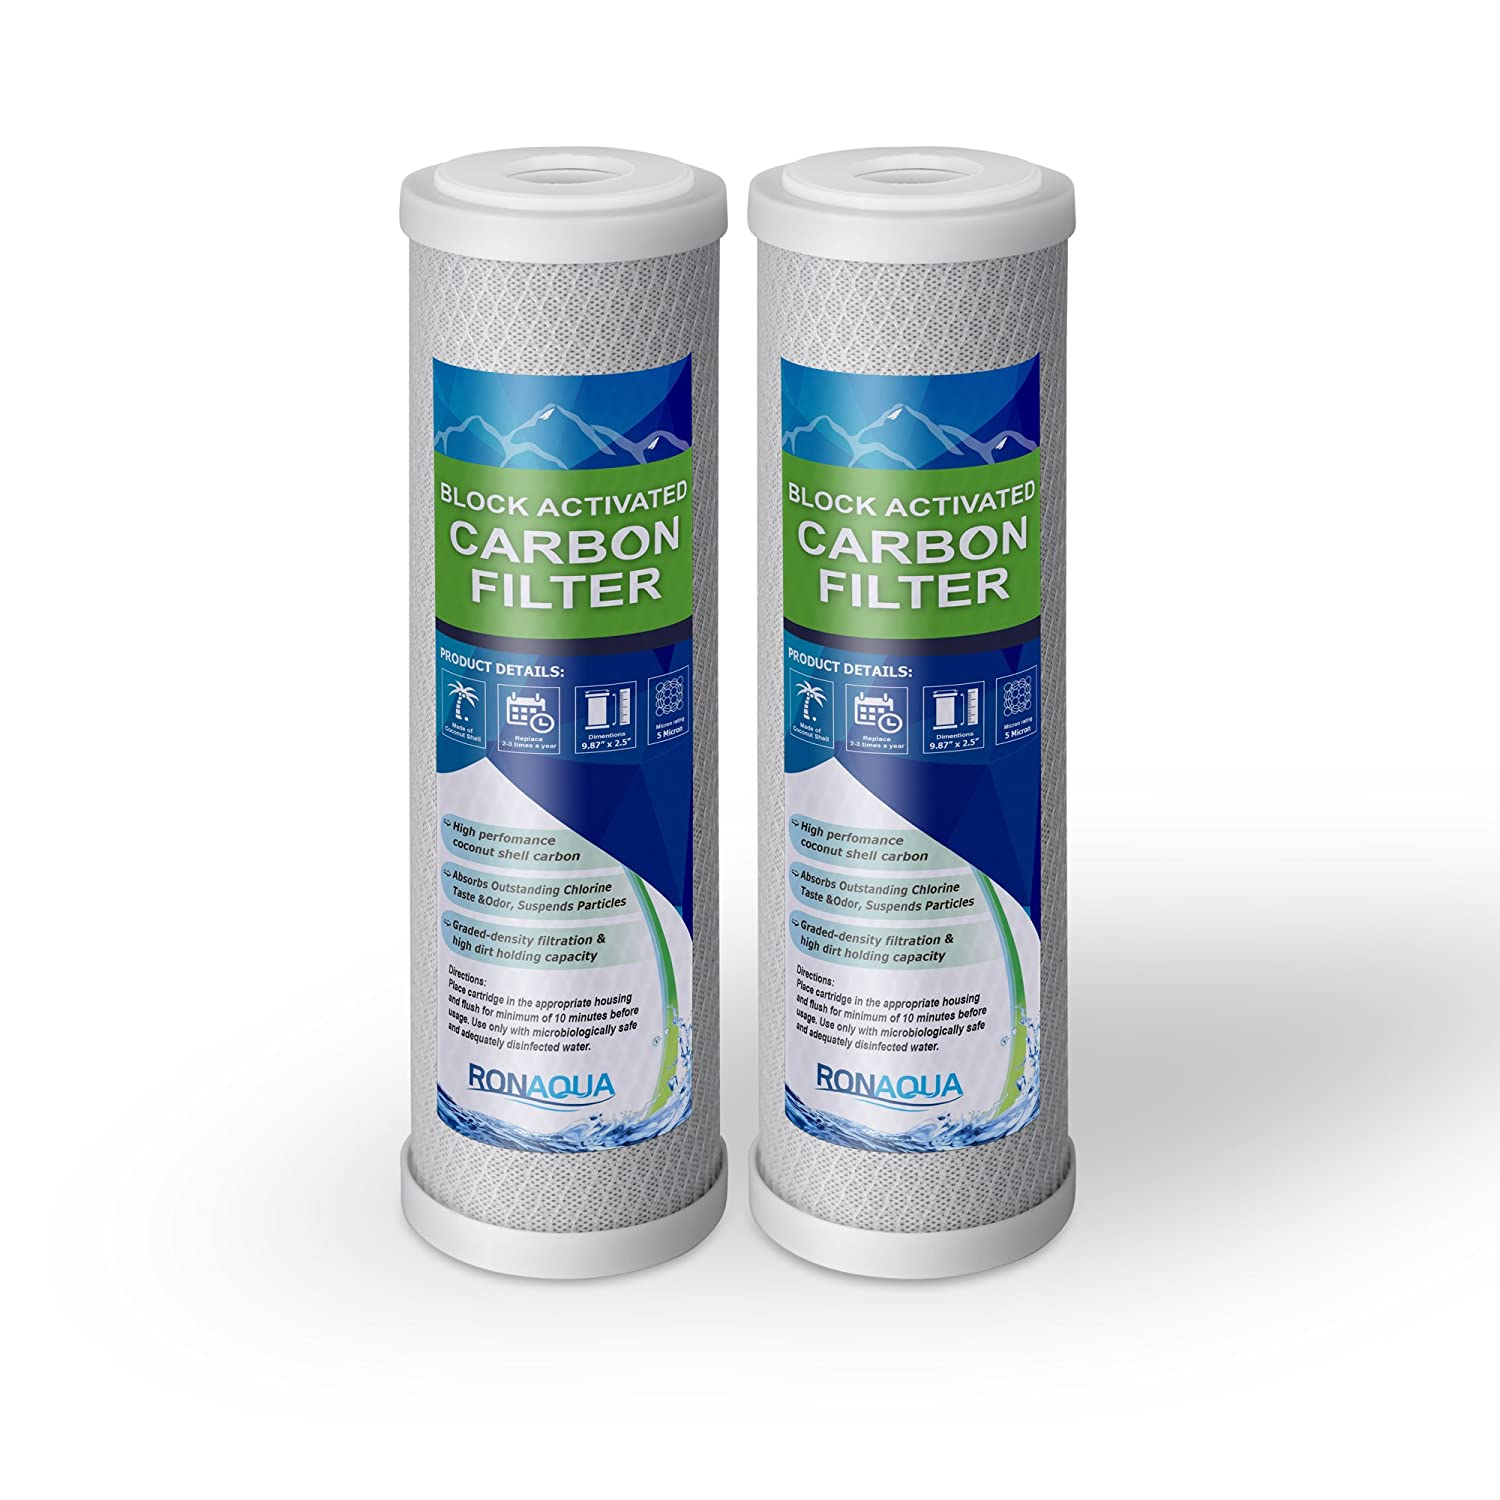 """Block Activated Carbon Coconut Shell Water Filter Cartridge 5 Micron for RO & Standard 10"""" Housing WELL-MATCHED with WFPFC8002, WFPFC9001, WHCF-WHWC, WHEF-WHWC, FXWTC, SCWH-5 (2 Pack)"""